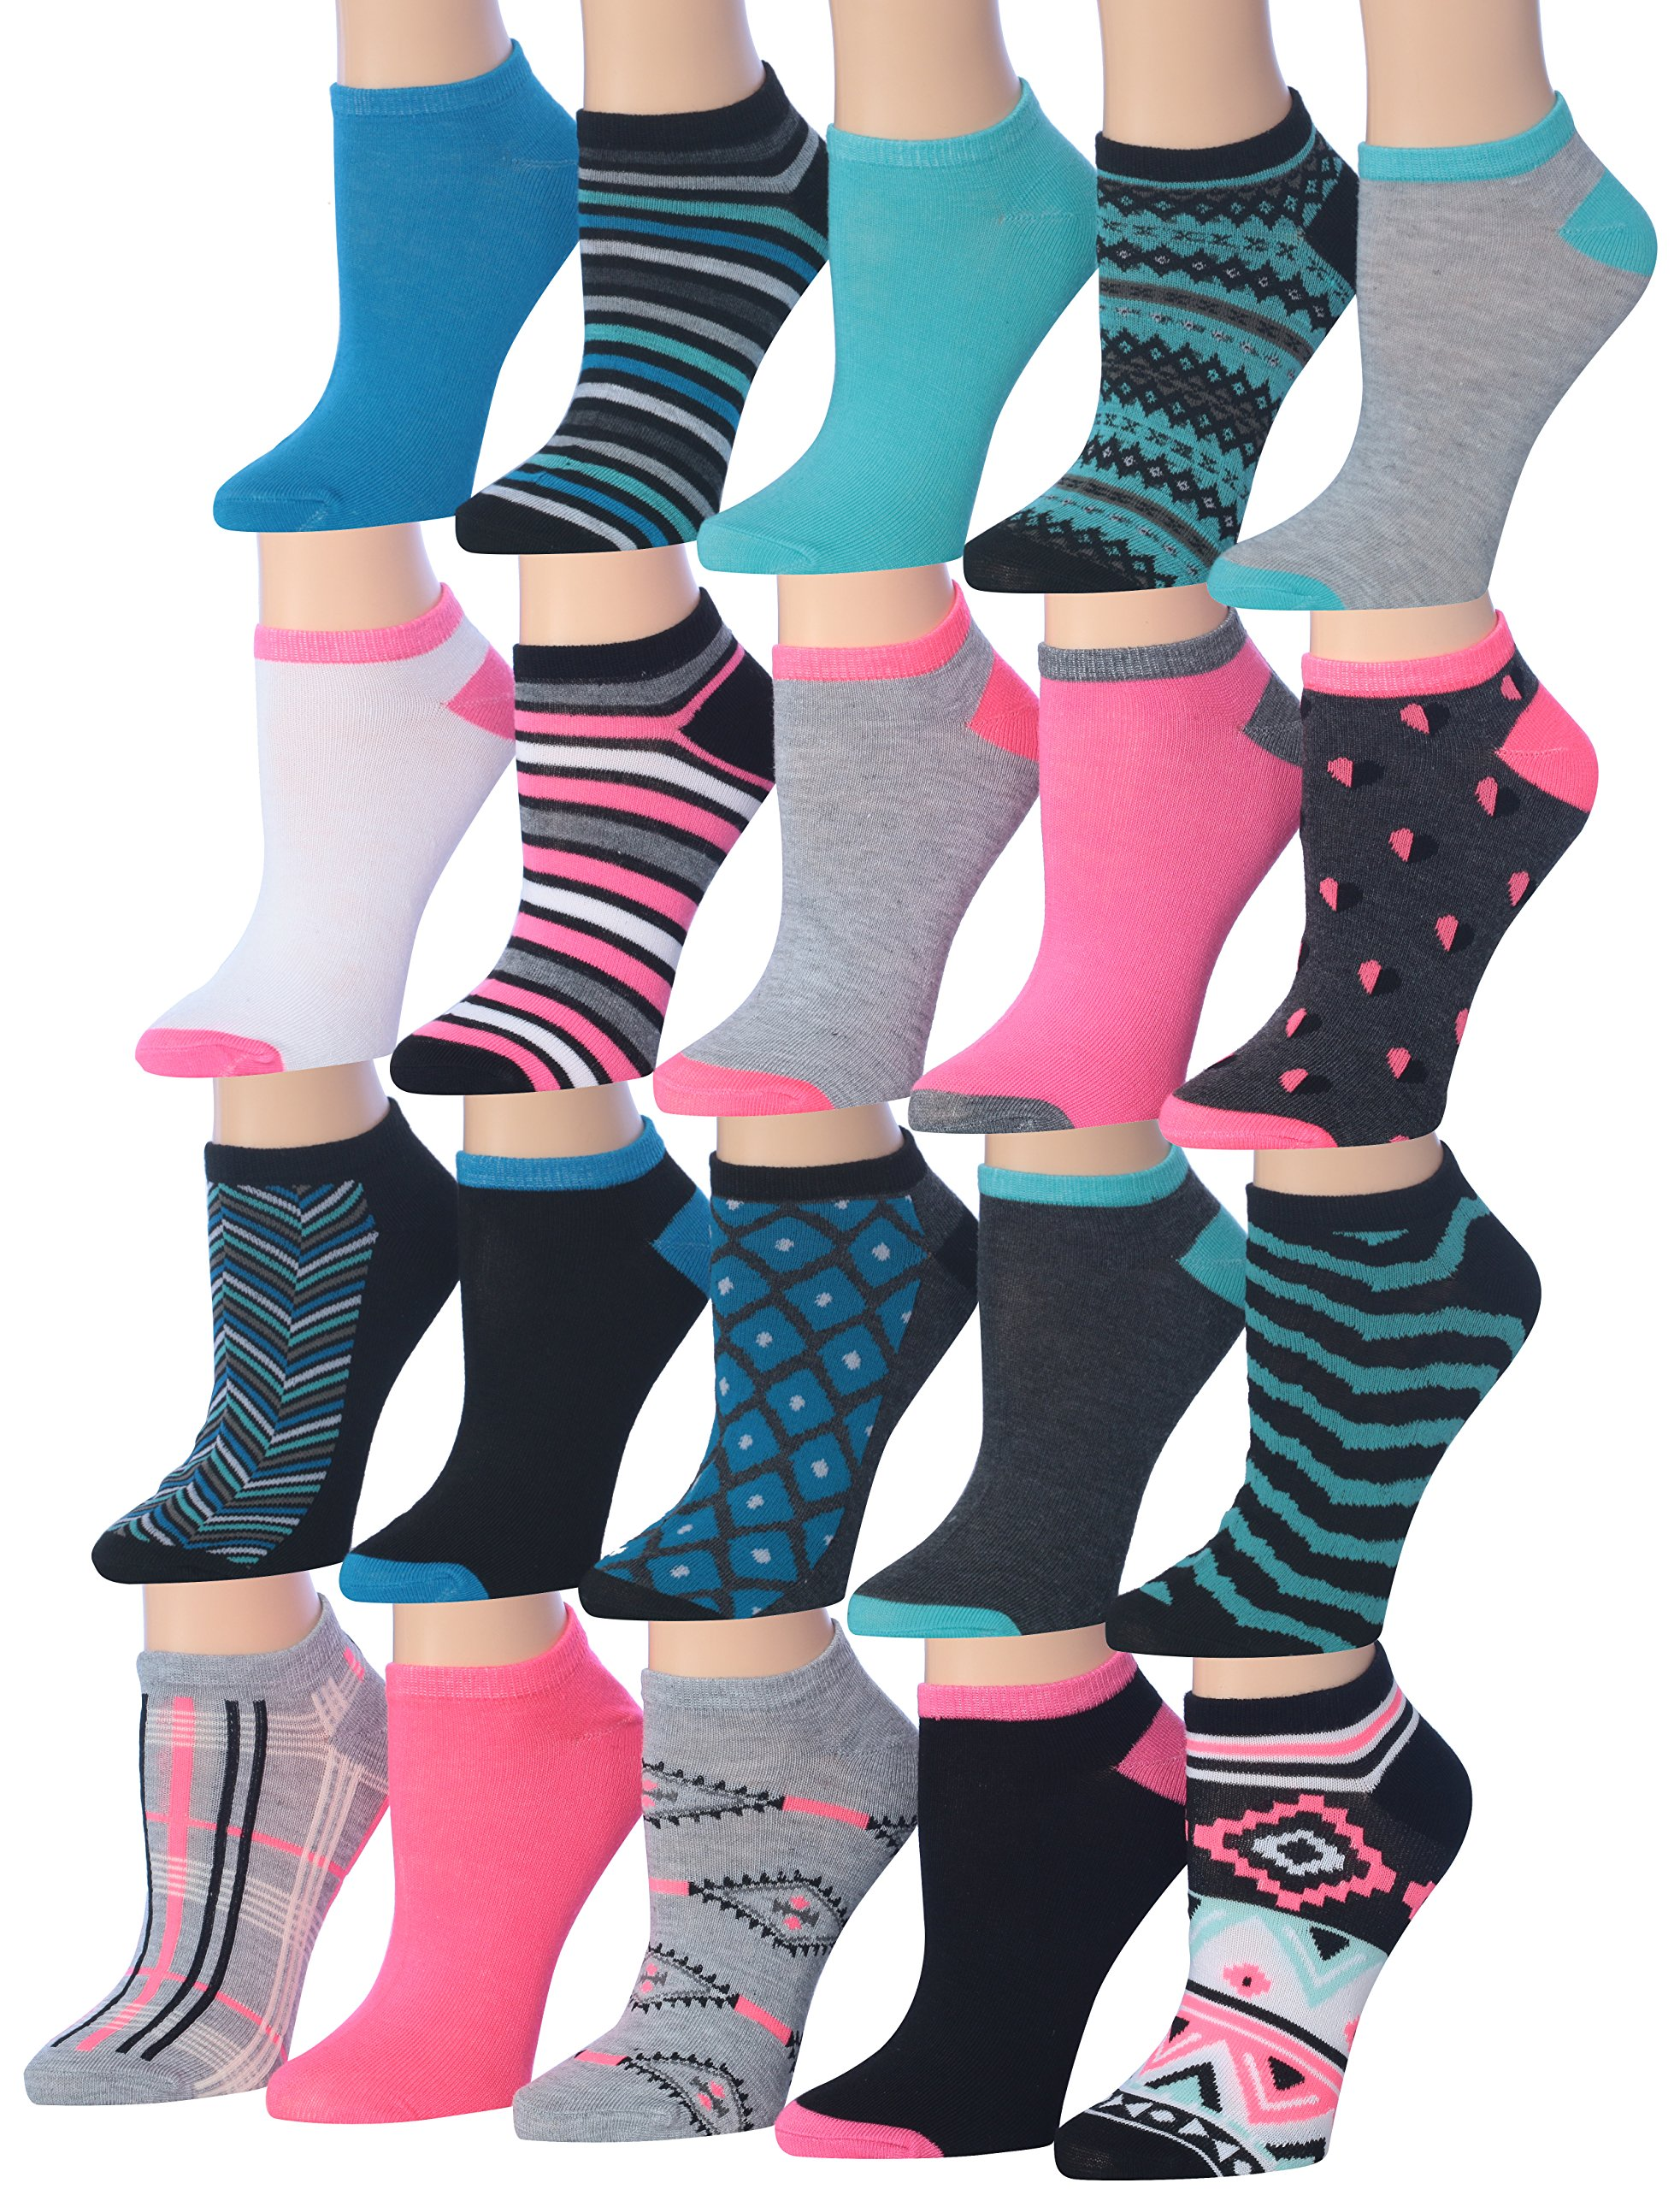 Tipi Toe Women's 20 Pairs Colorful Patterned Low Cut / No Show Socks, (sock size9-11) Fits shoe size 6-12, WL08-AB